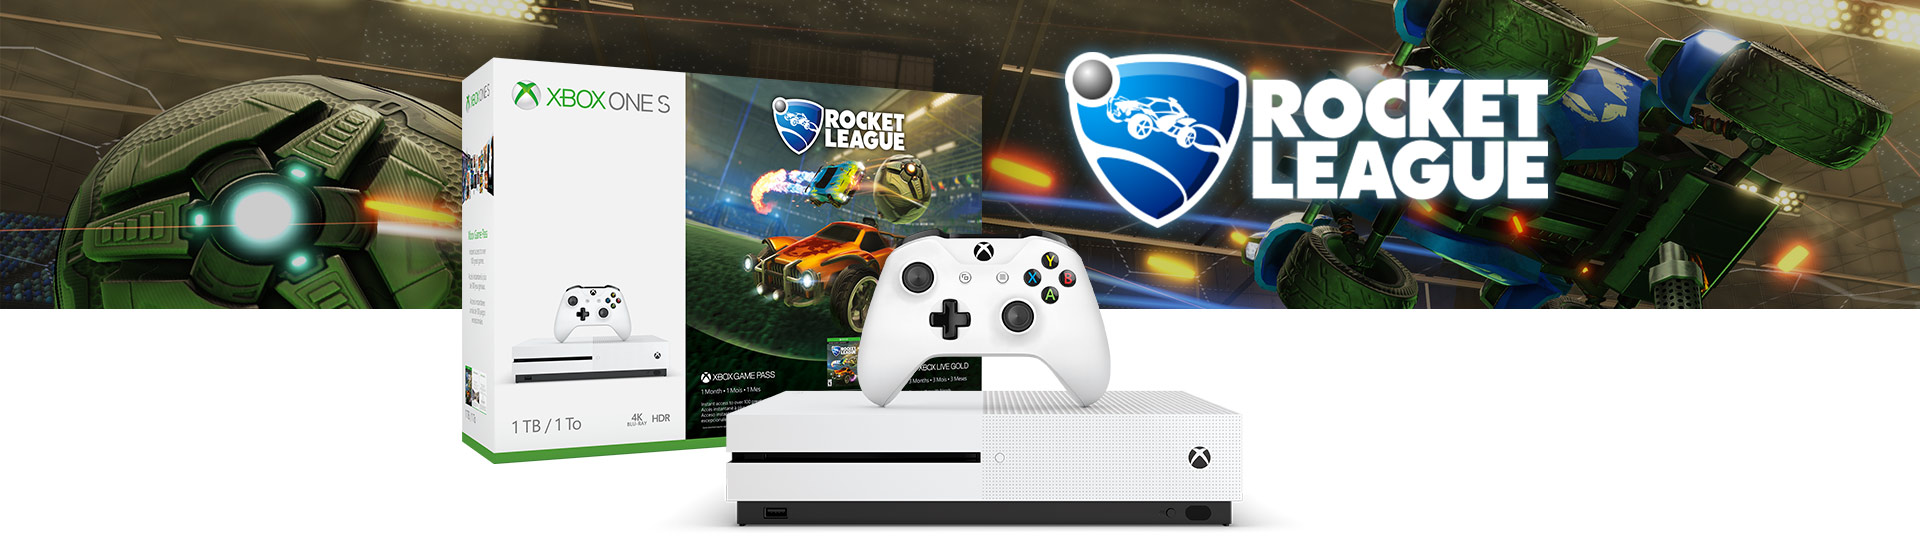 Pacote Xbox One S Rocket League Blast-Off de 1 terabyte